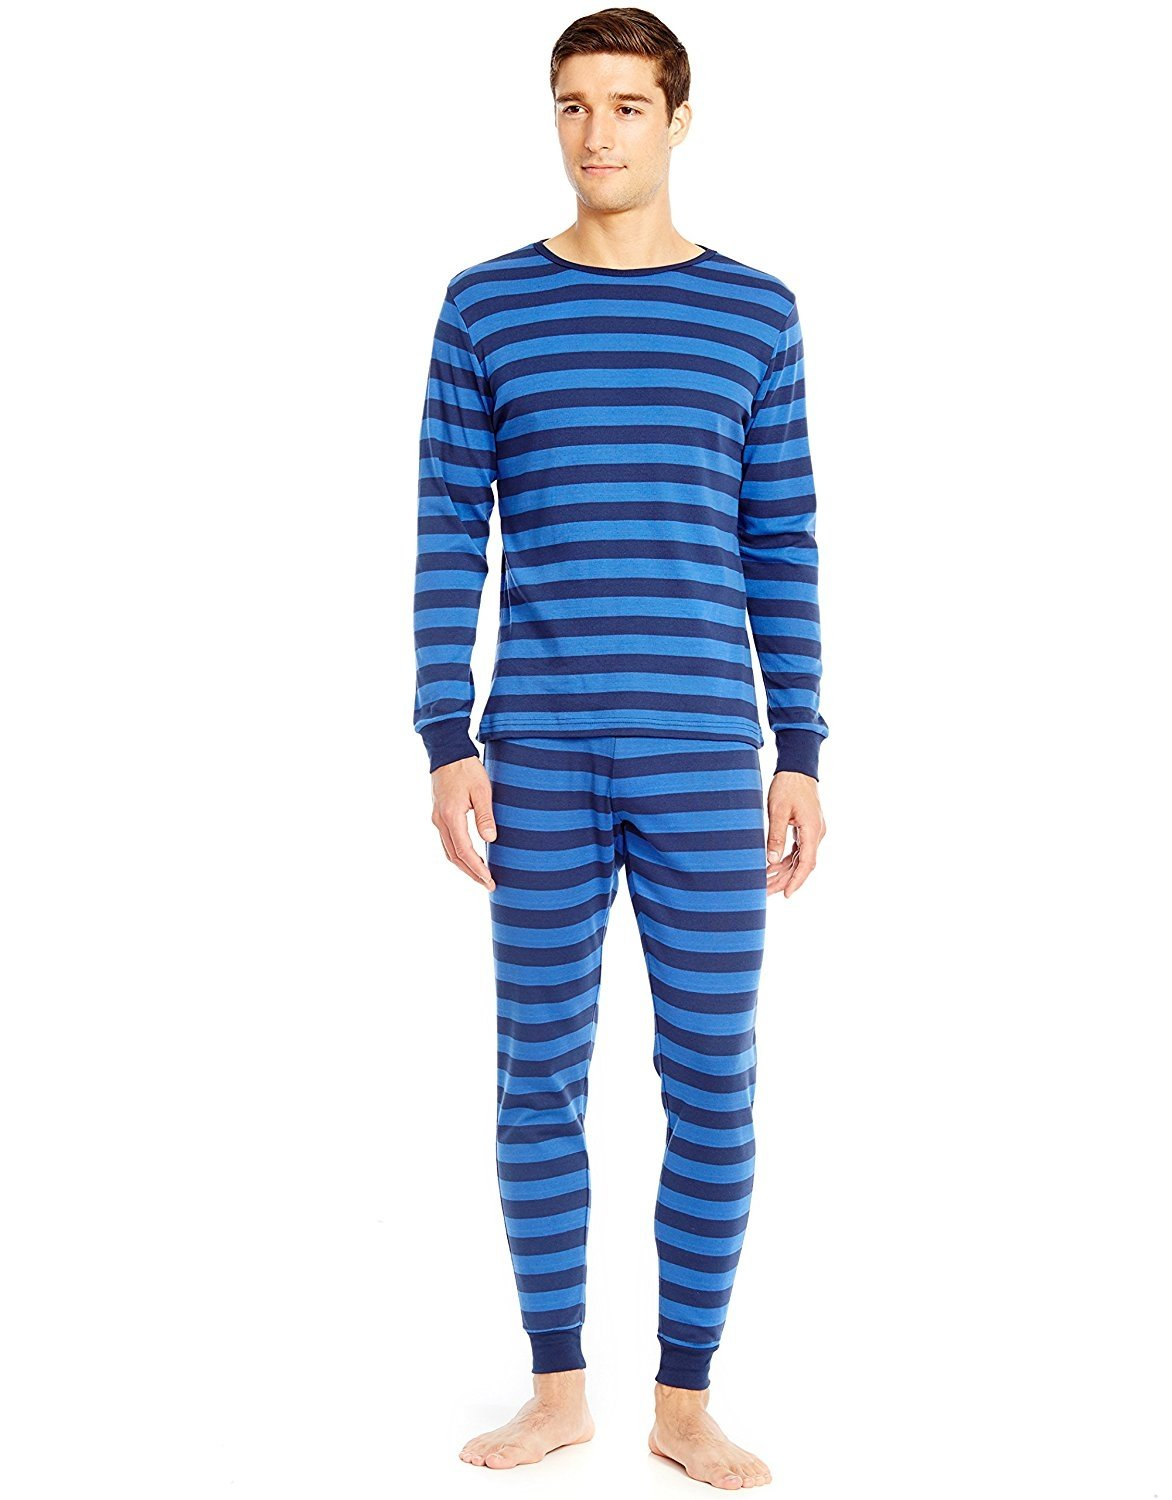 dab8e24116 Leveret Men s Fitted Striped Pajama Set 100% Cotton (Size X Small-X ...